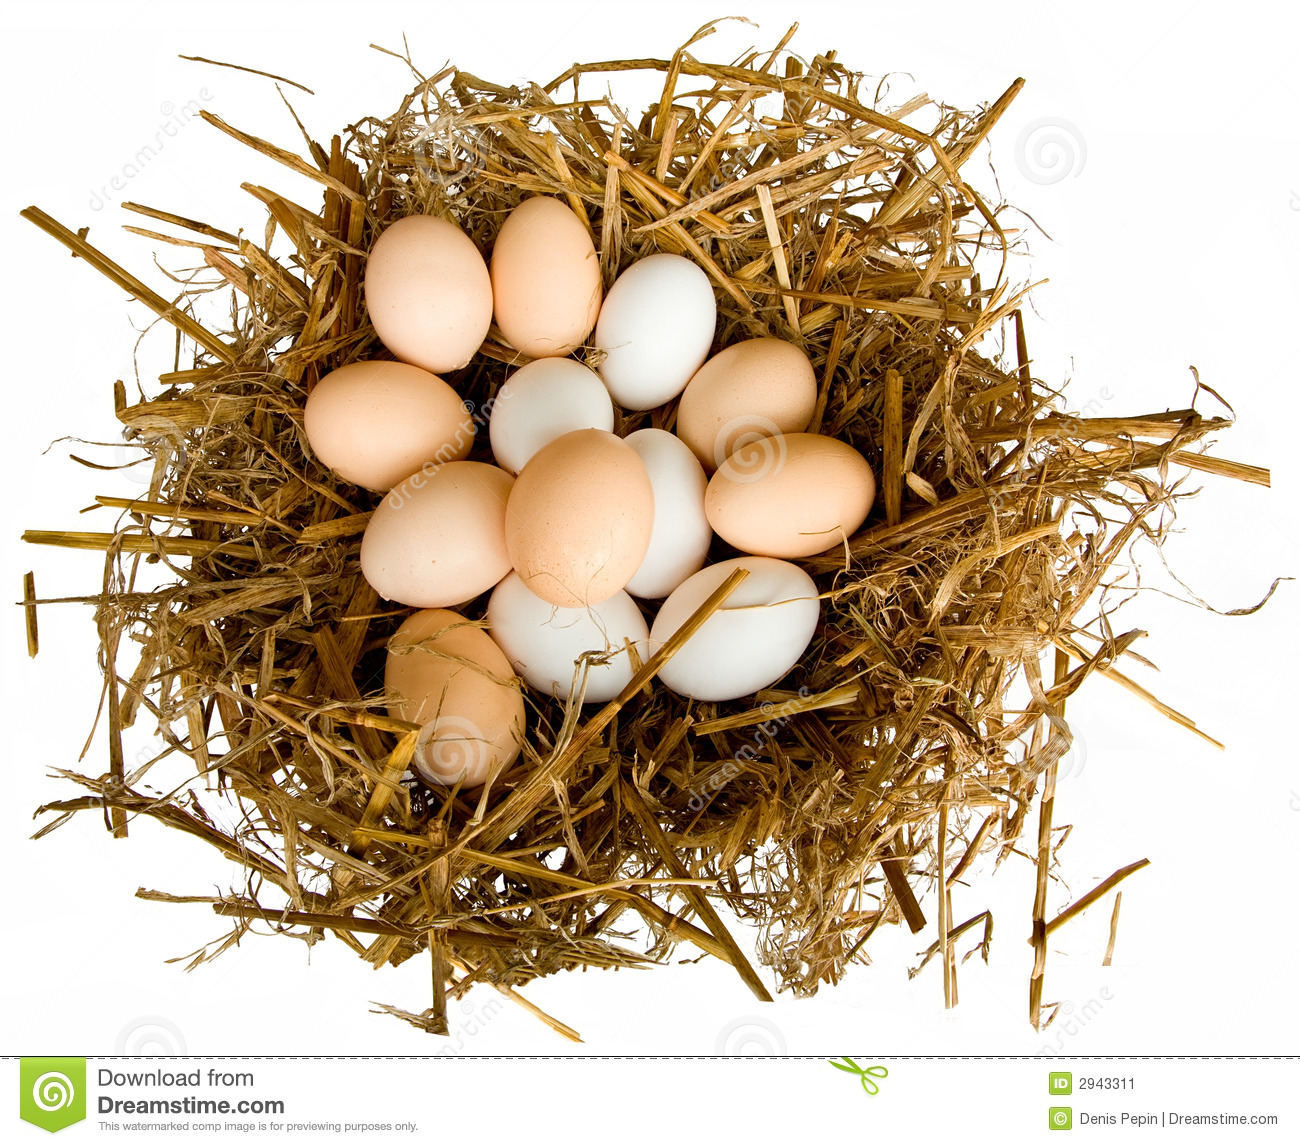 This is a closeup of several eggs in a nest.